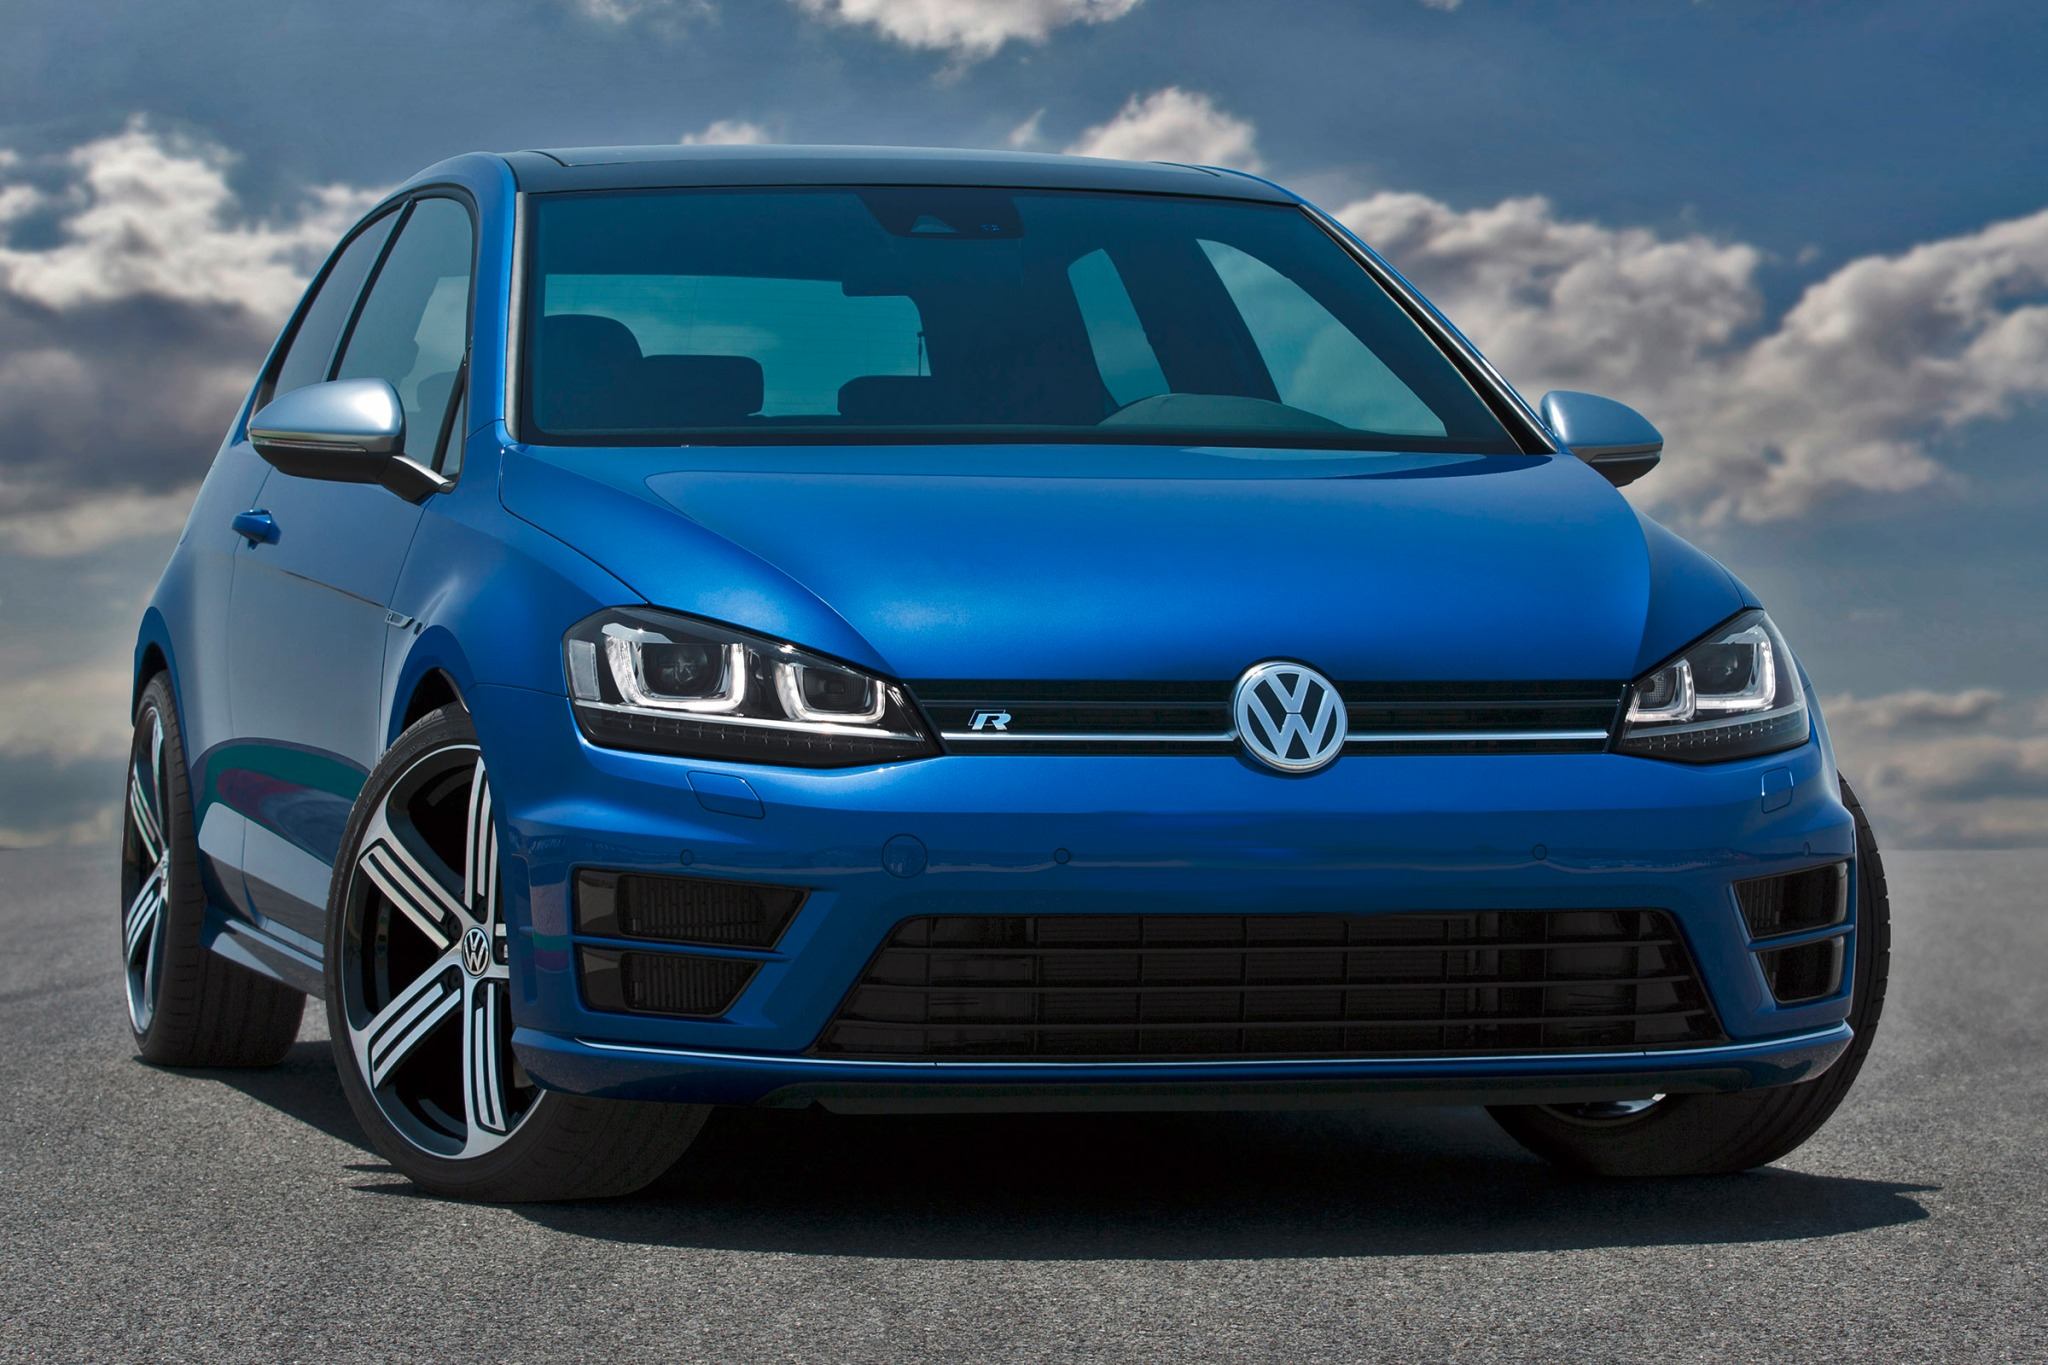 express specs passat small full price auto and details volkswagen models